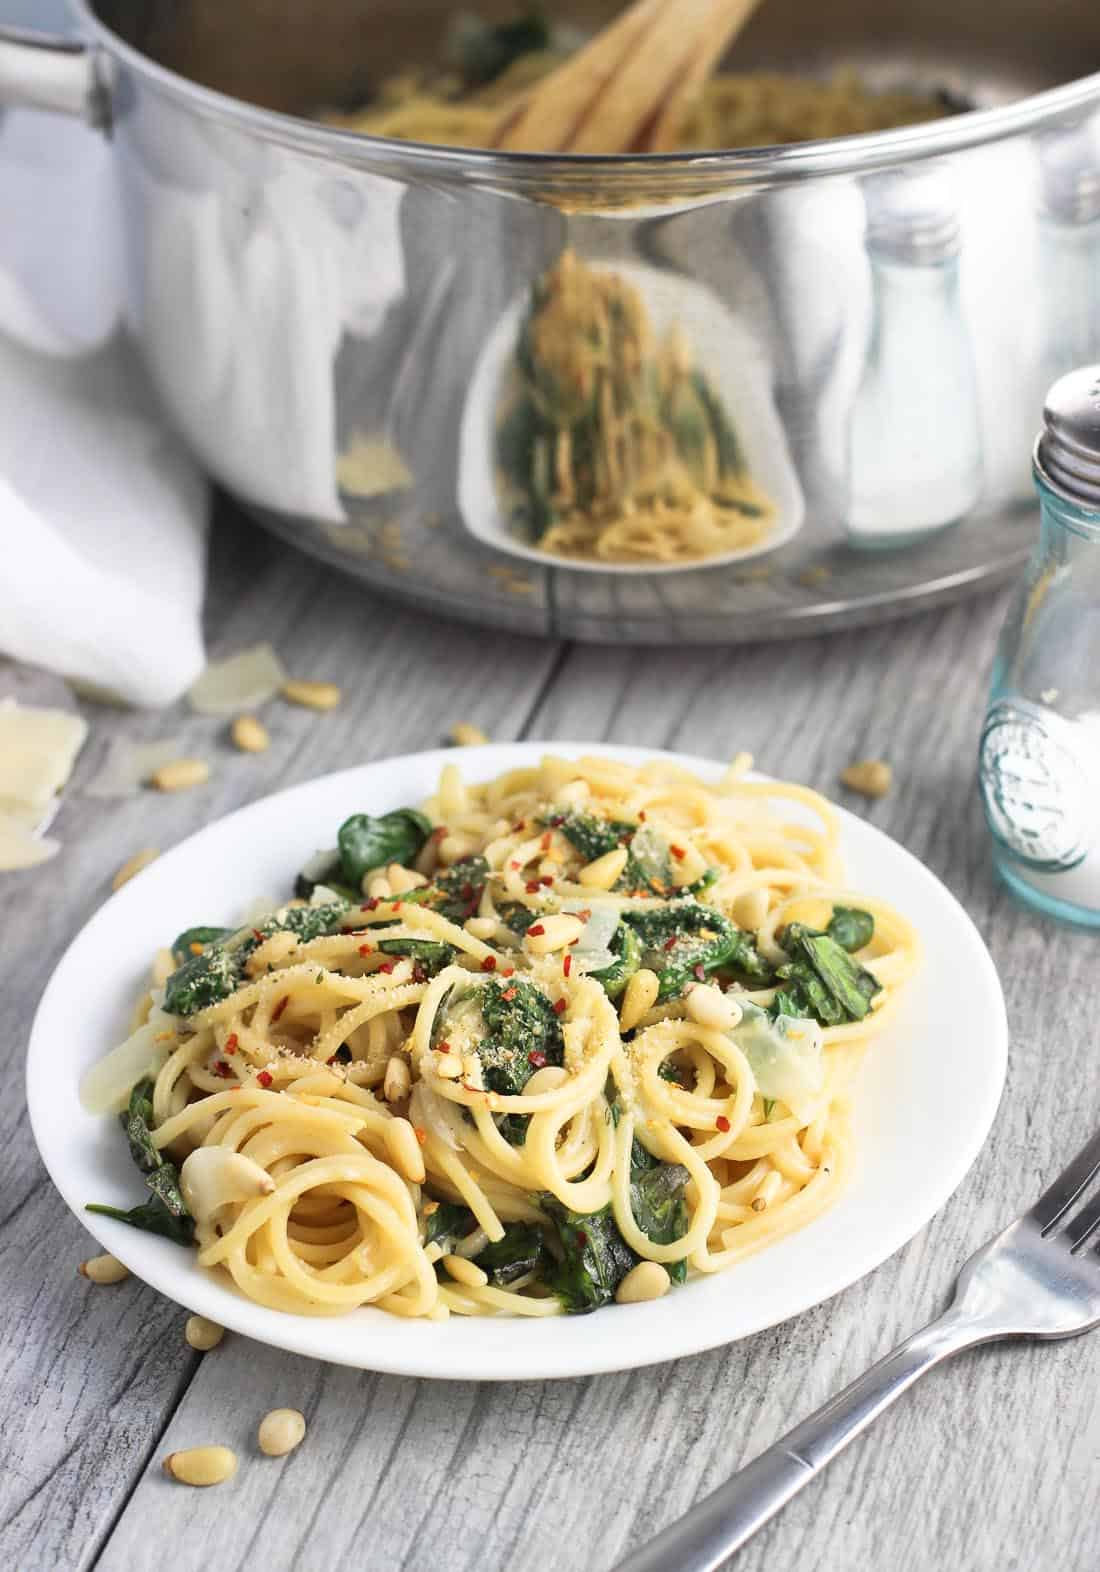 This lemon spinach one-pot pasta recipe is dairy-free and ultra creamy! There's no draining required, and it takes just 30 minutes from start to finish! A great weeknight dinner recipe.